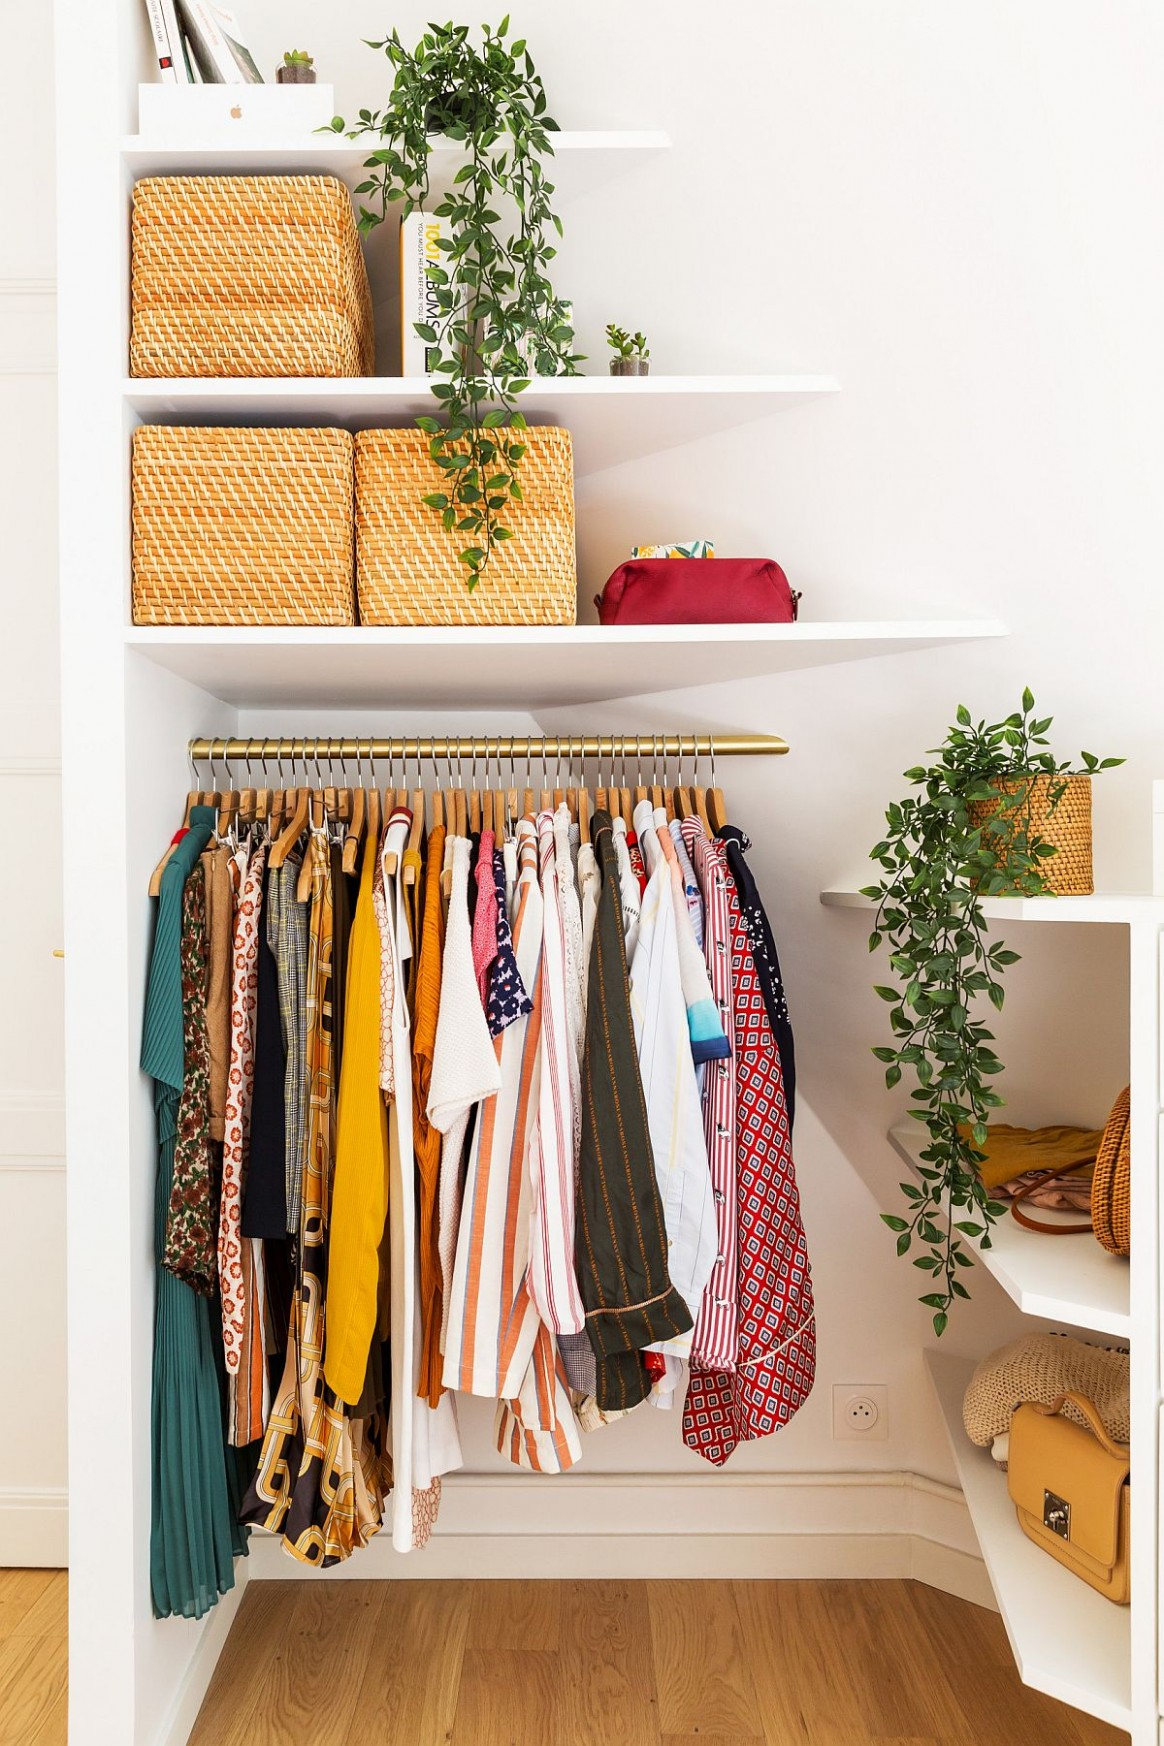 10 Small Apartment Closet Ideas that Save Space with Innovative Design - Closet Ideas Apartment